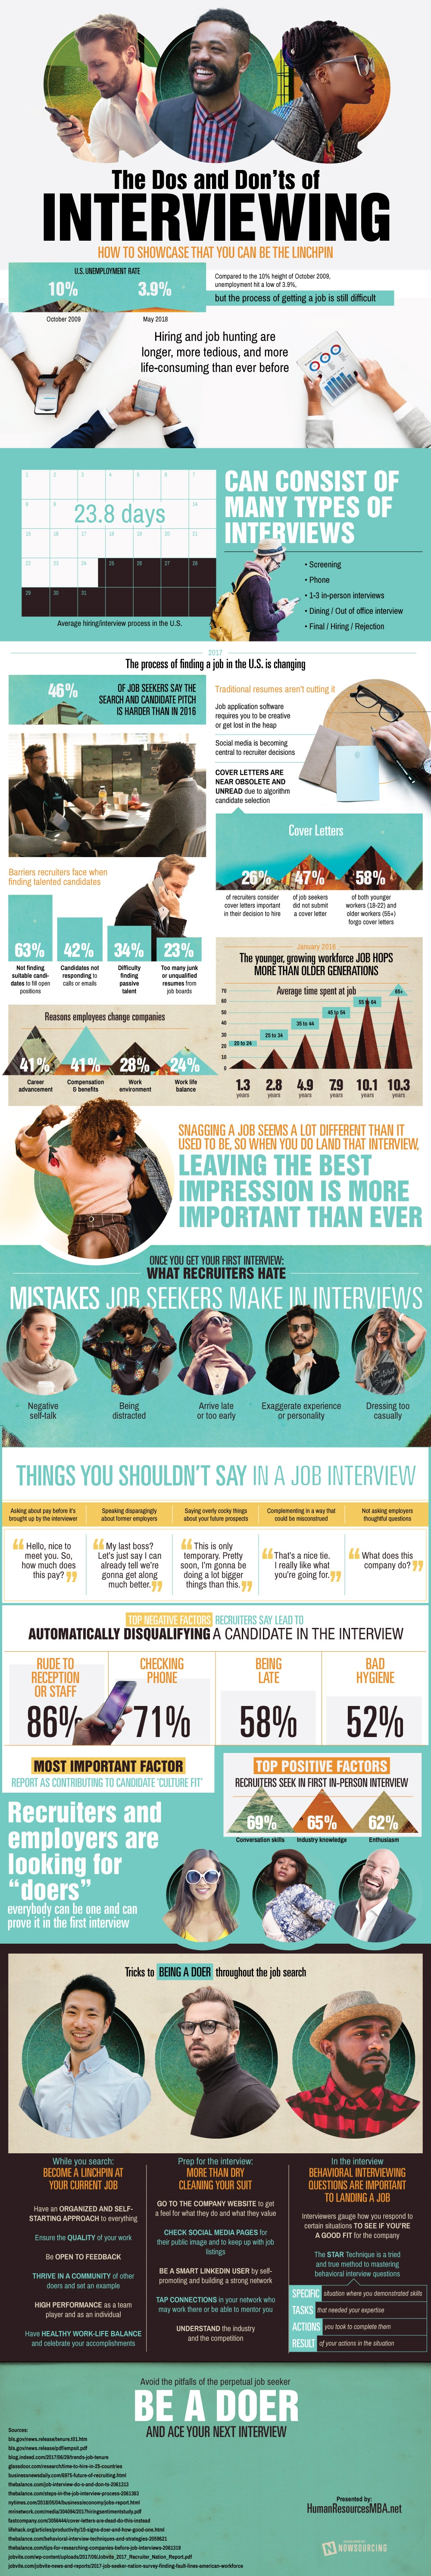 Be The Linchpin: Interviewing Skills For The Modern Era [Infographic]